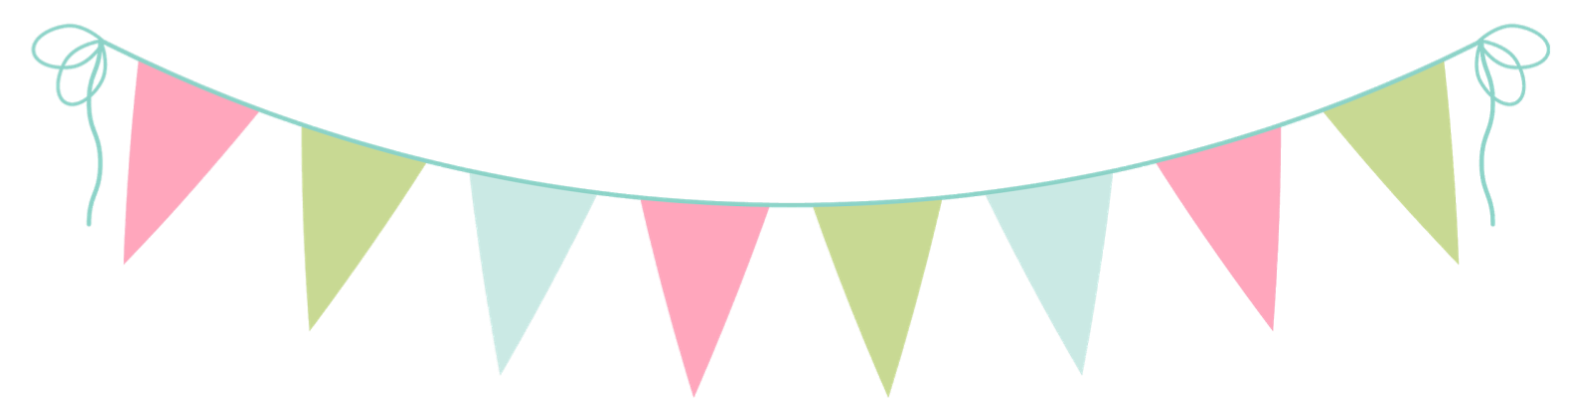 Pendent clipart school banner Pennant clipart School Pennant photo#23